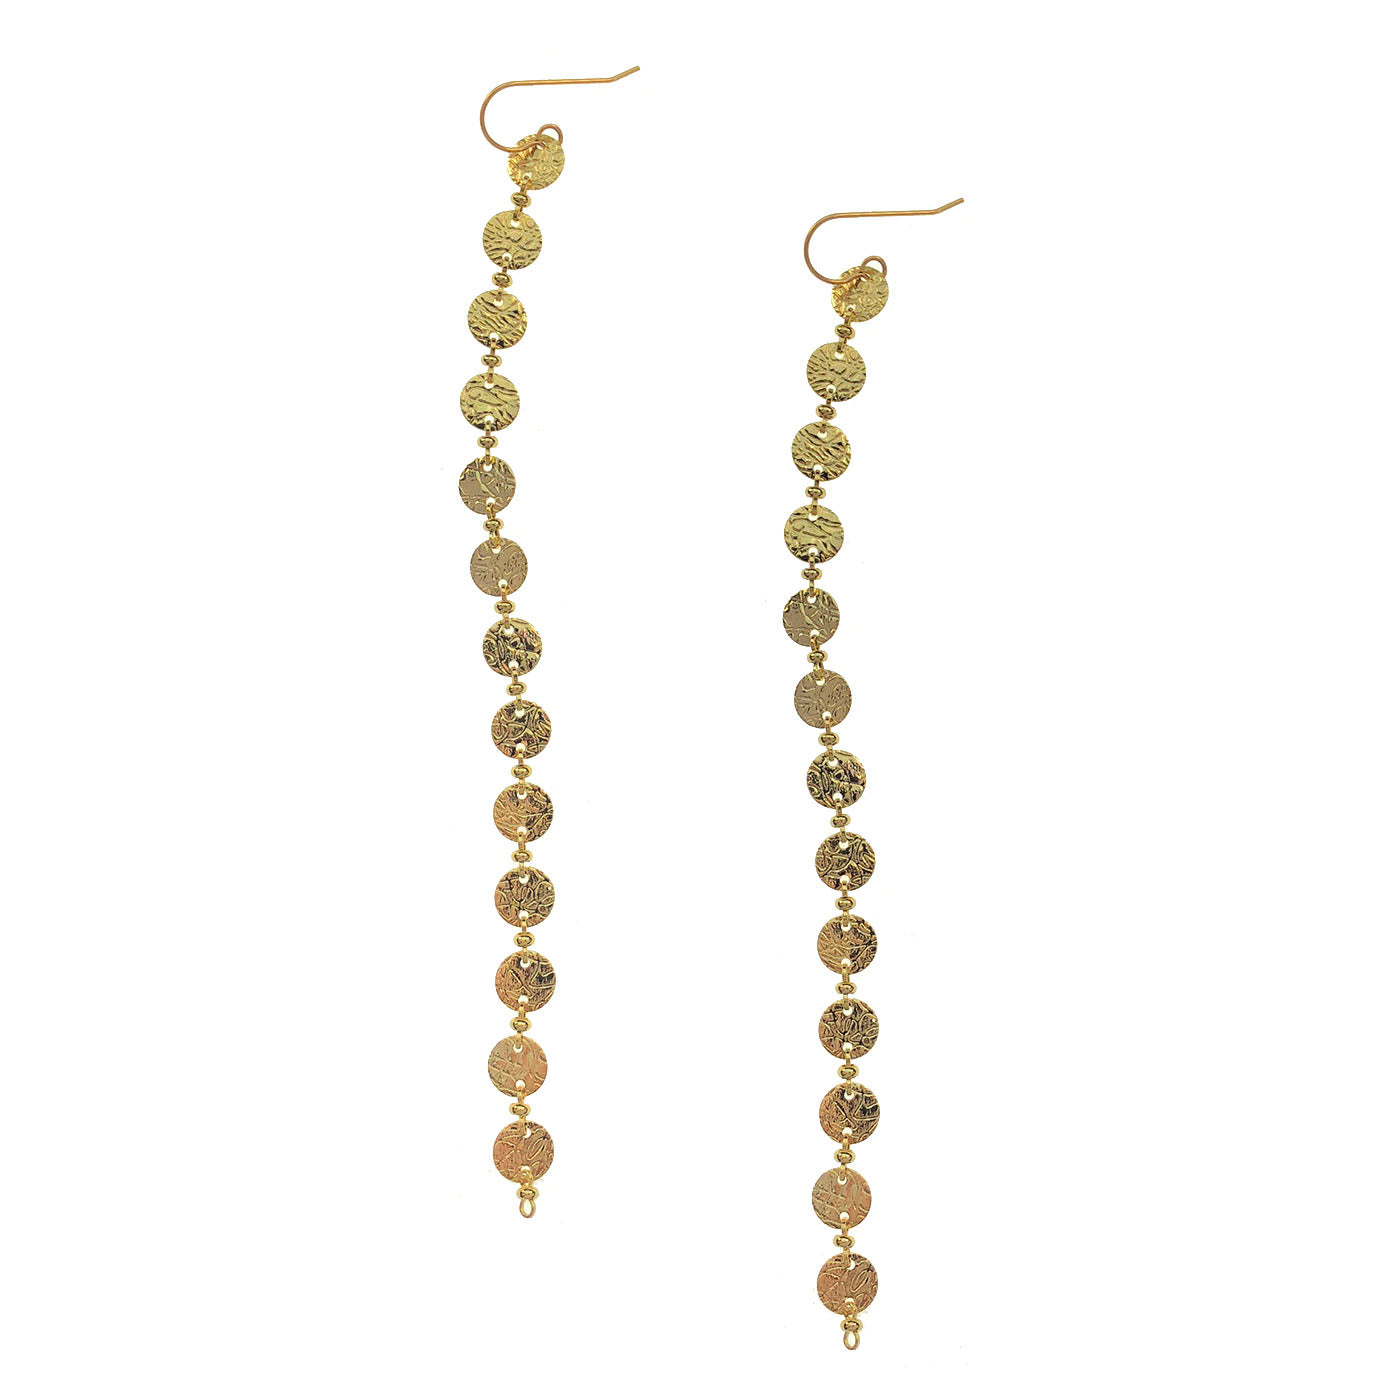 Textured Coin Strand Earrings